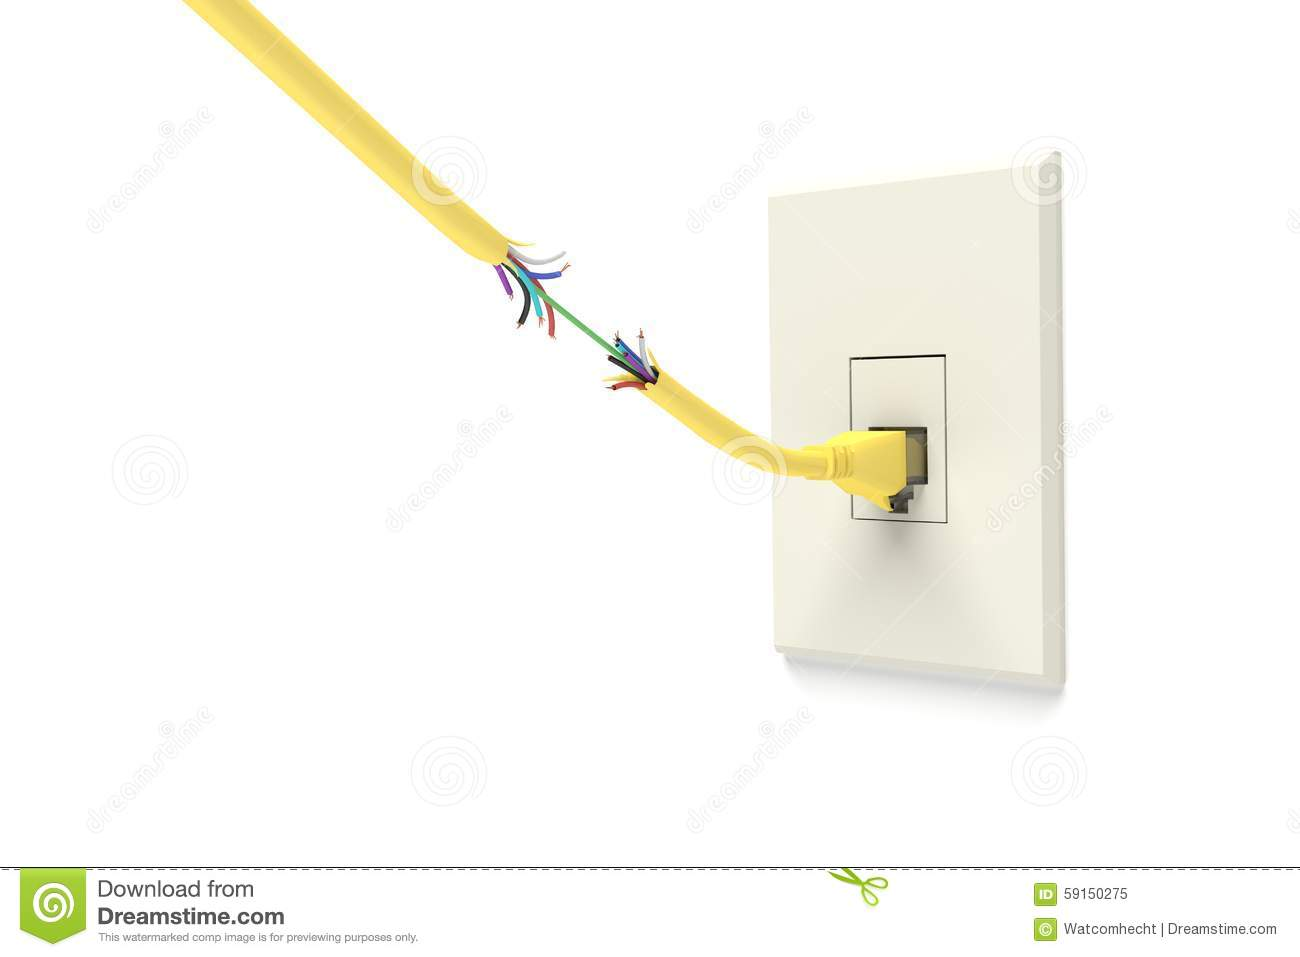 Faulty Network stock illustration. Illustration of isolated - 59150275